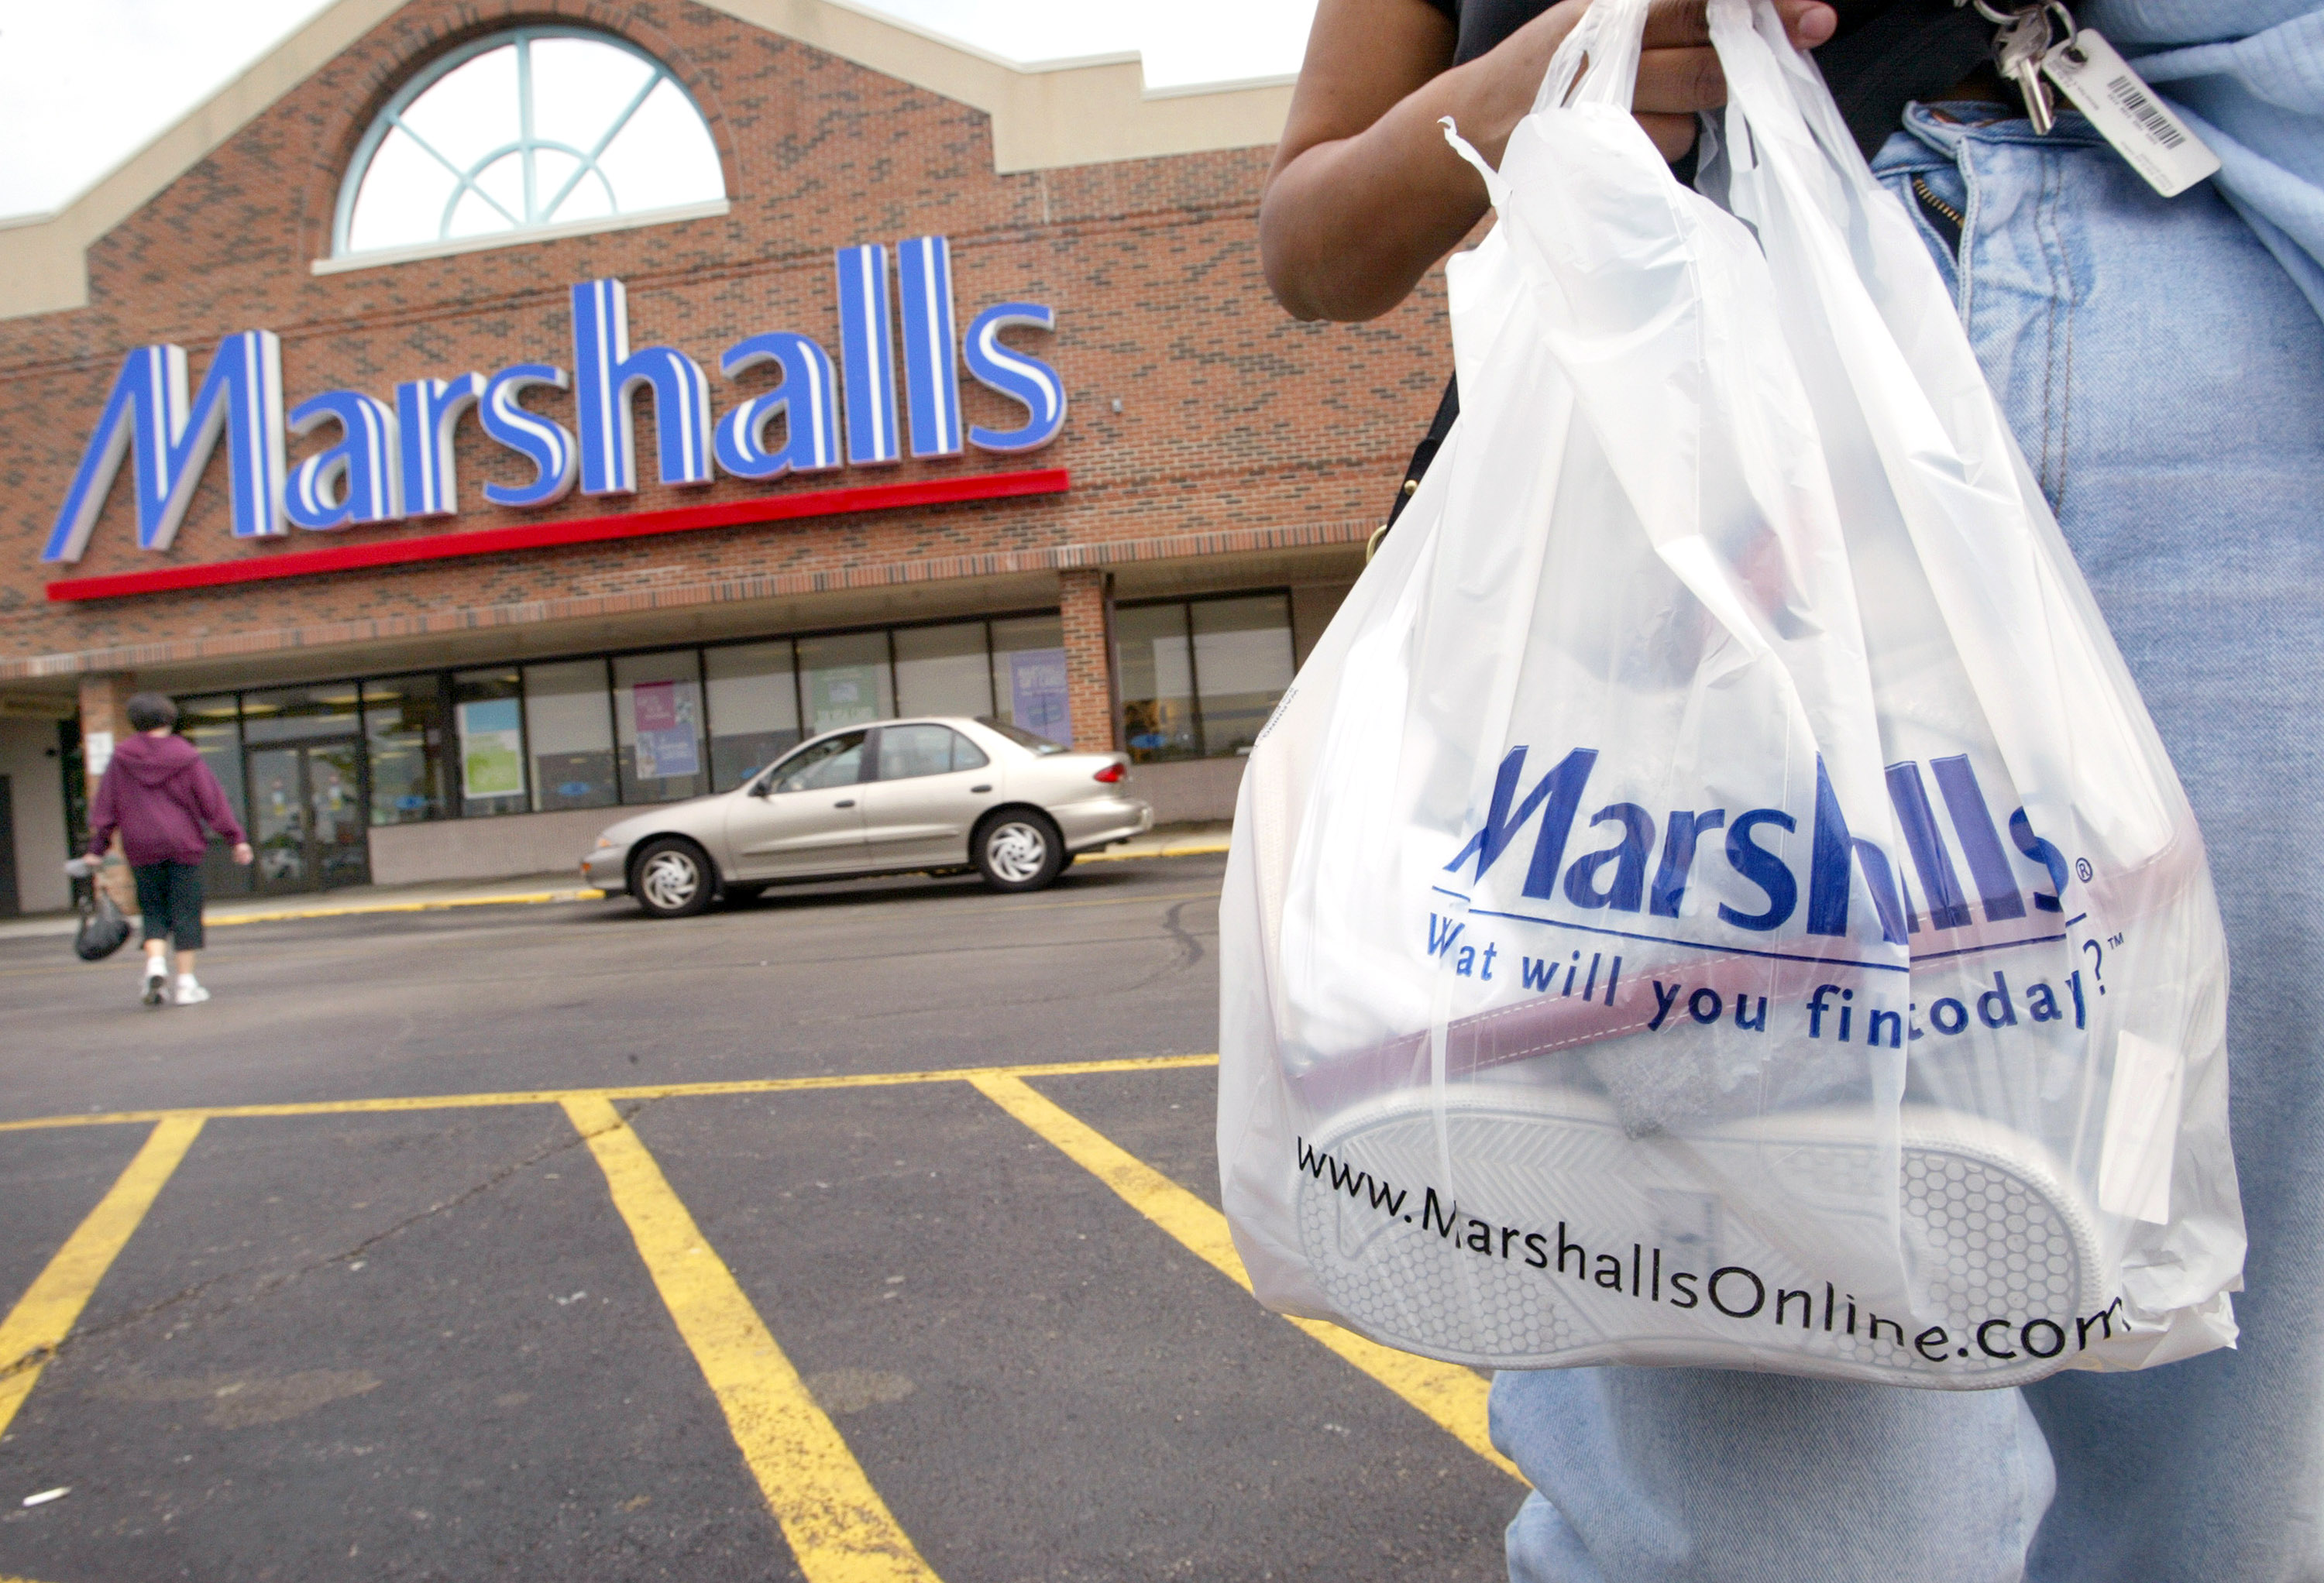 MOUNT PROSPECT - MAY 19:  A shopper with her purchases walks to her car outside a Marshalls store May 19, 2004 in Mount Prospect, Illinois. T.J. Maxx' and Marshalls' parent company TJX Cos. posted a 48 percent first-quarter rise in profit. Sales alone from the T.J. Maxx and Marshalls stores rose 12.6 percent from last year.  (Photo by Tim Boyle/Getty Images)